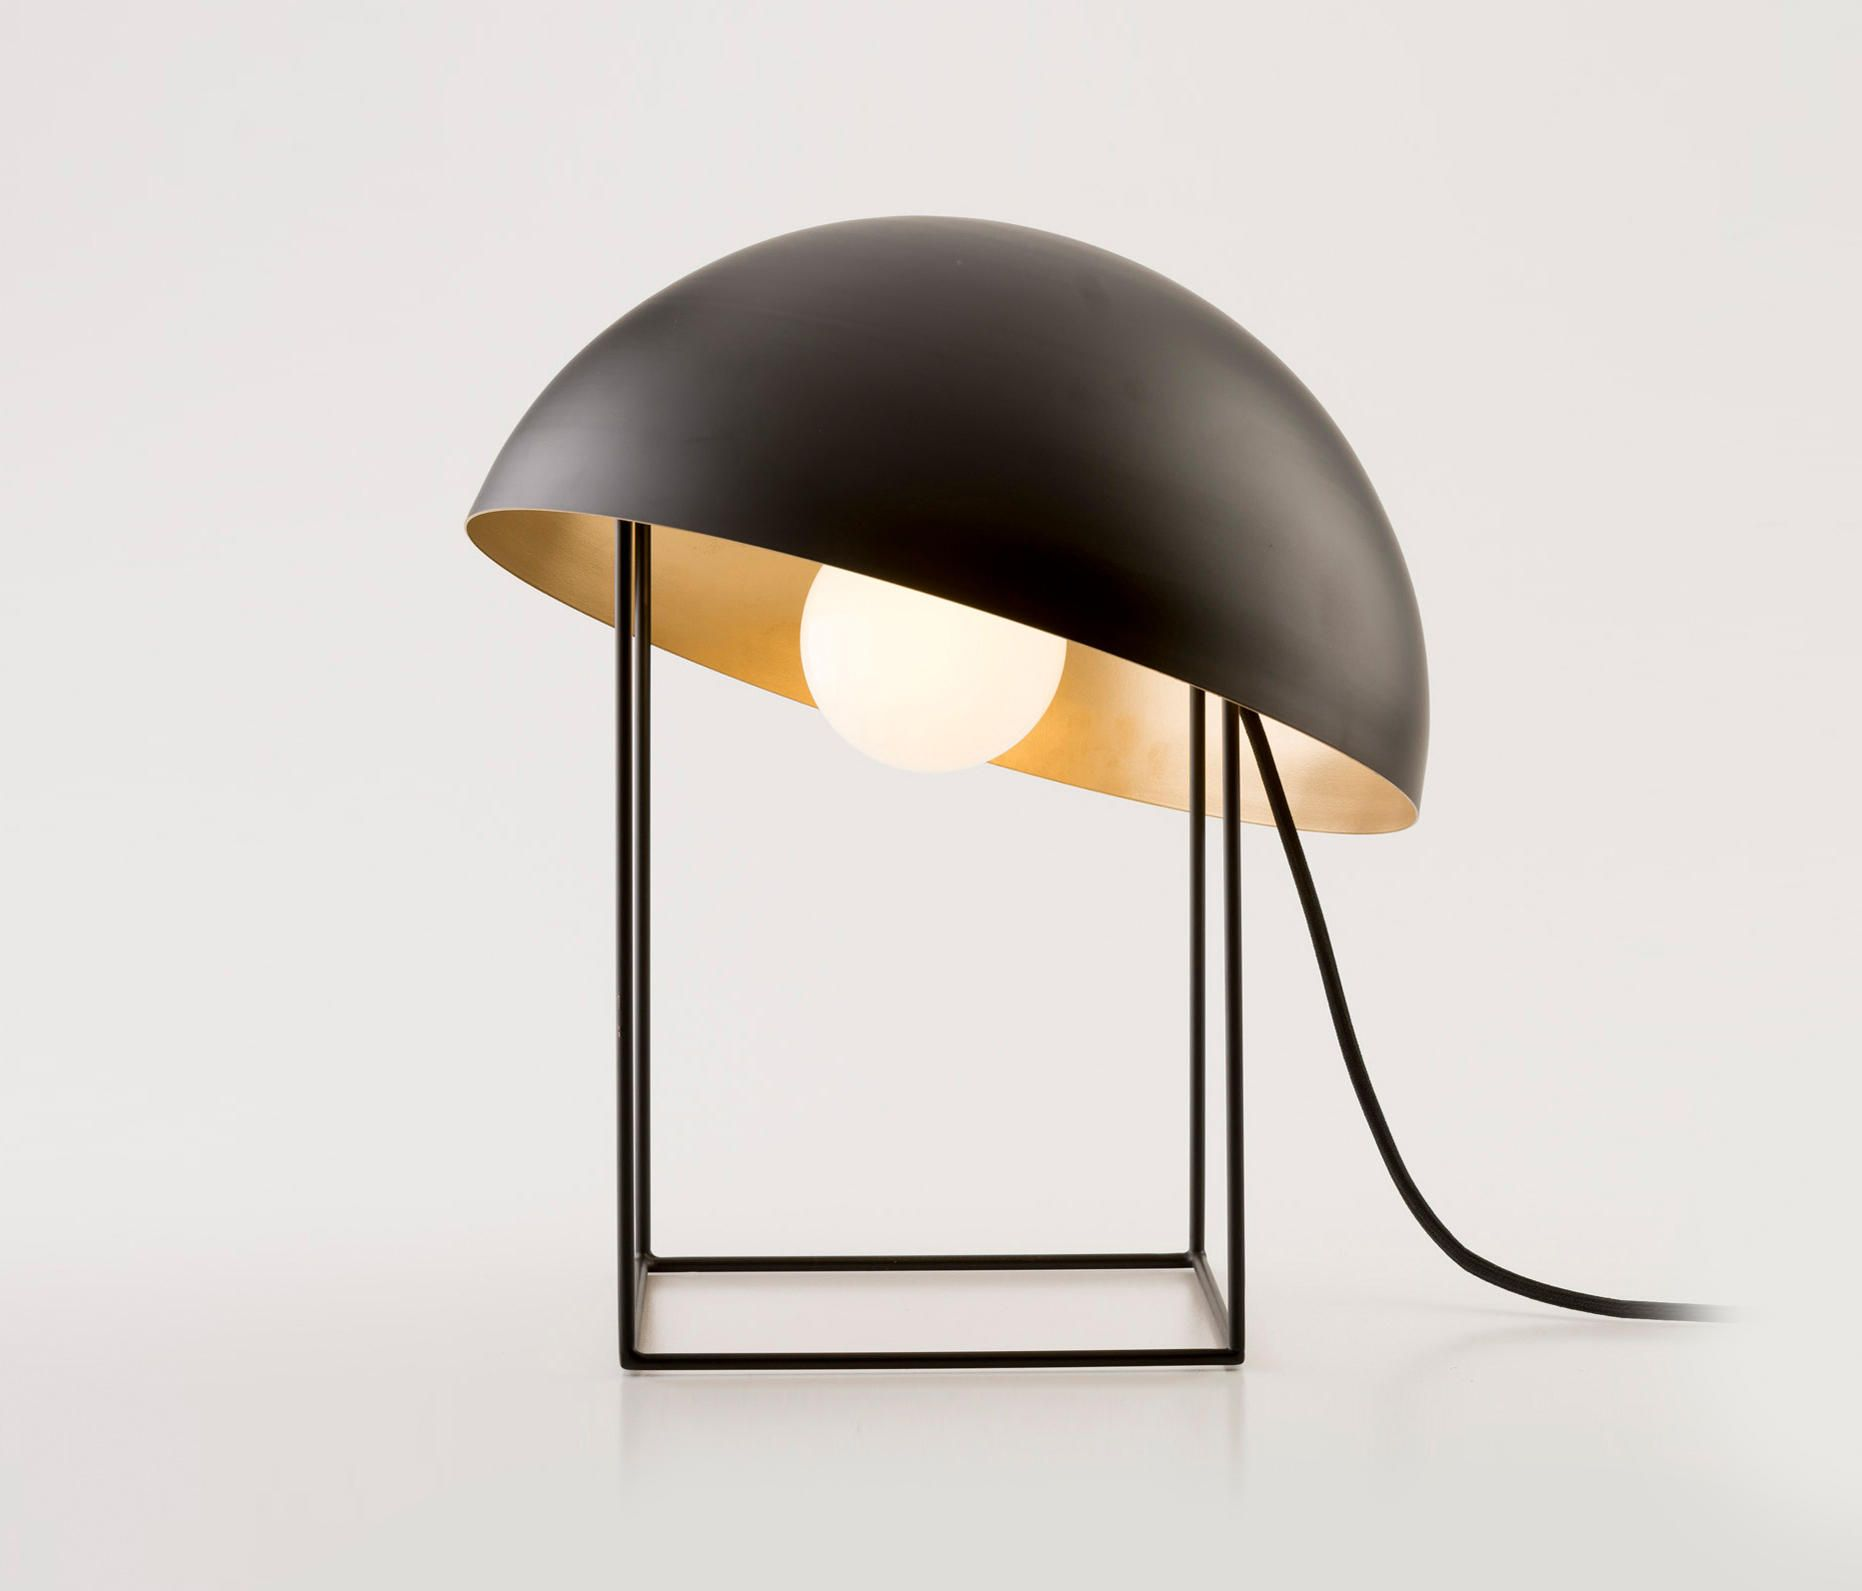 All about Coco table lamp by almerich on Architonic. Find